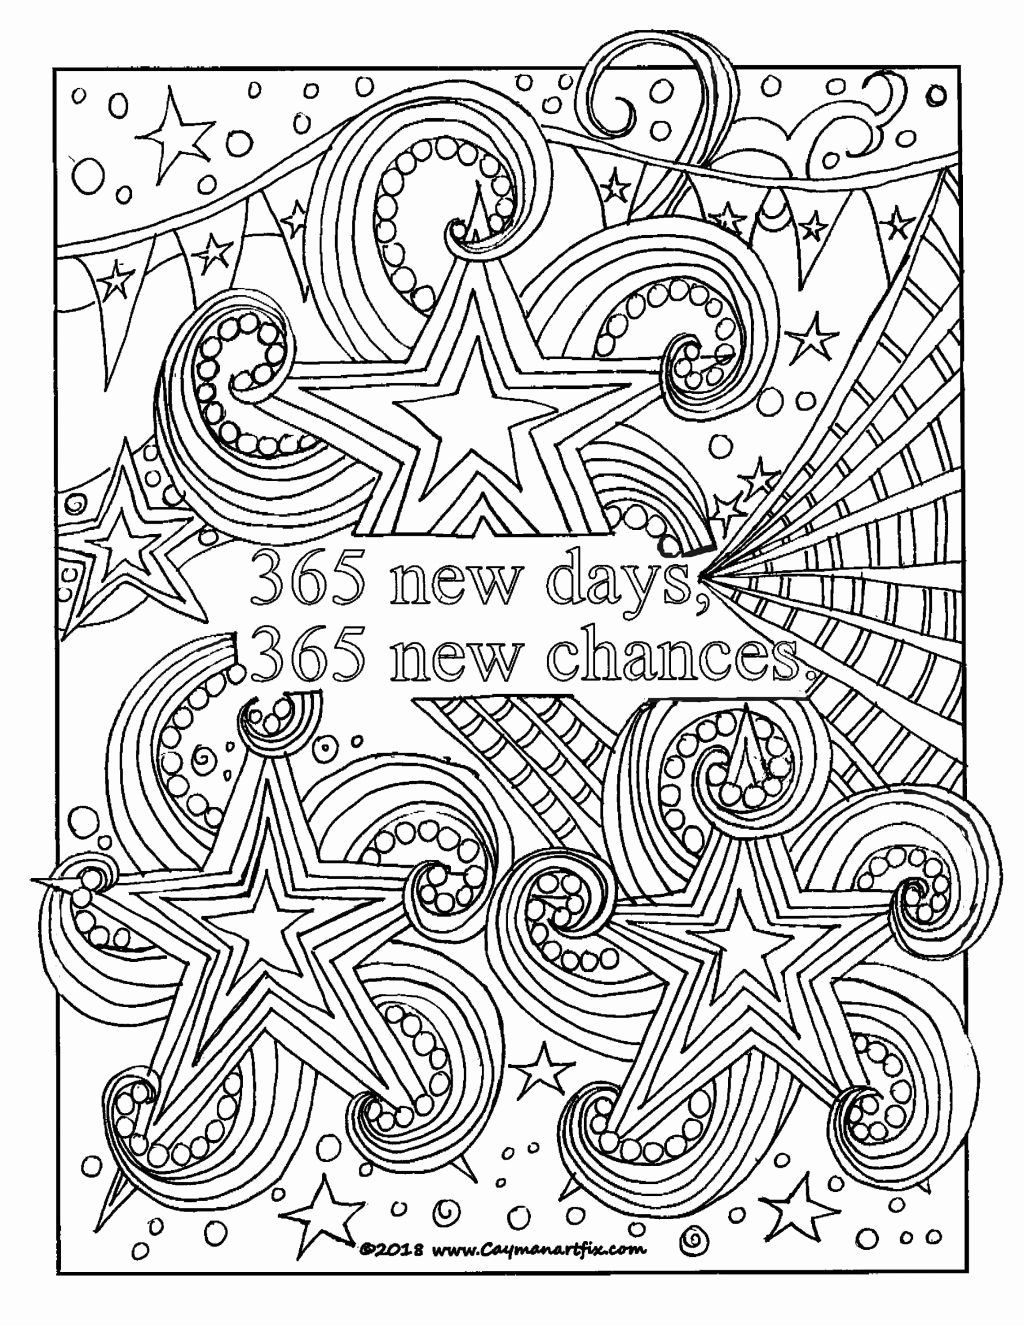 Thanksgiving Coloring Sheets For Toddlers Fresh Coloring